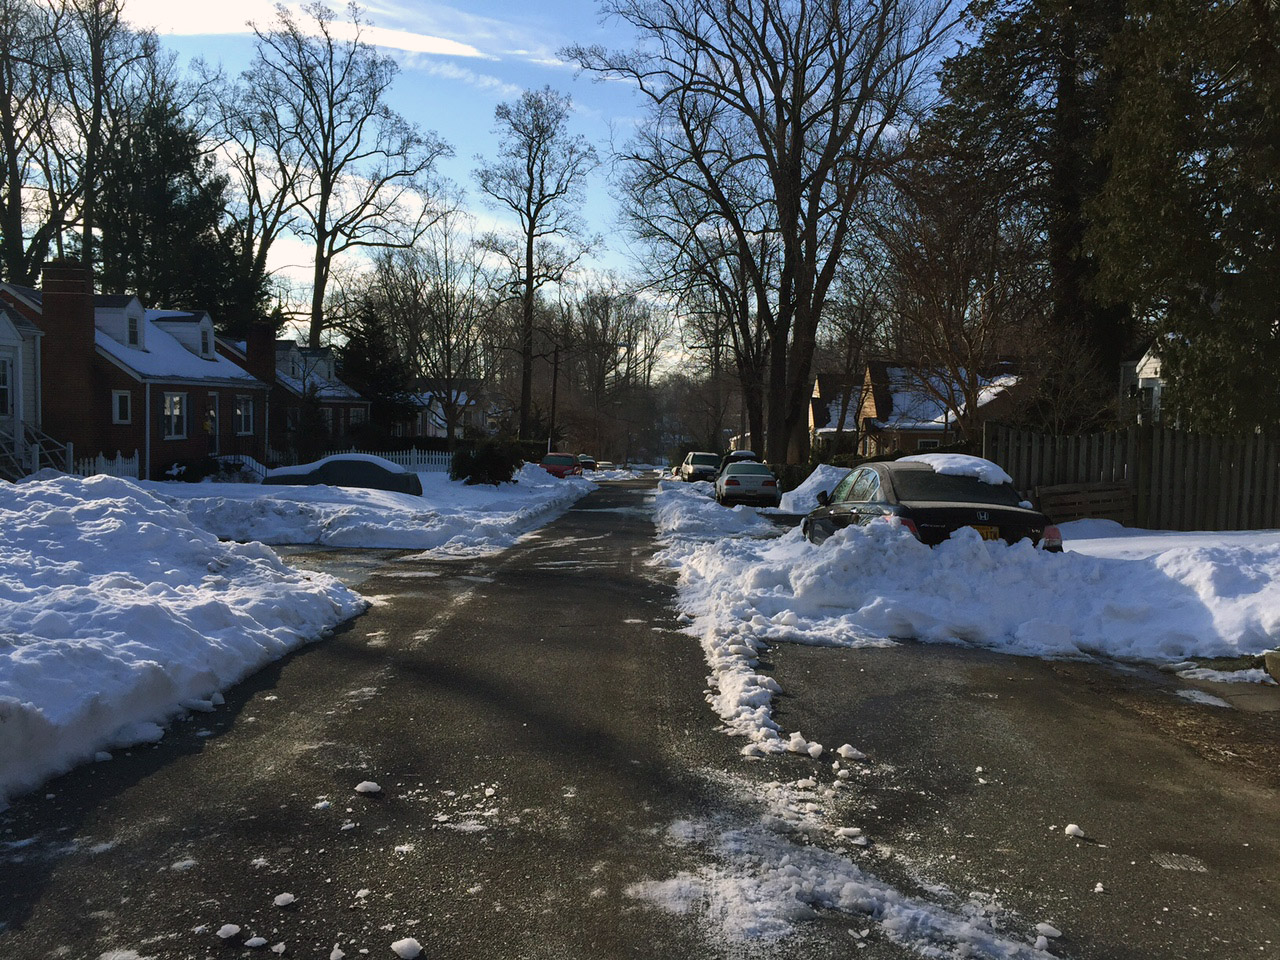 Road officials respond to complaints of poor snow clearance